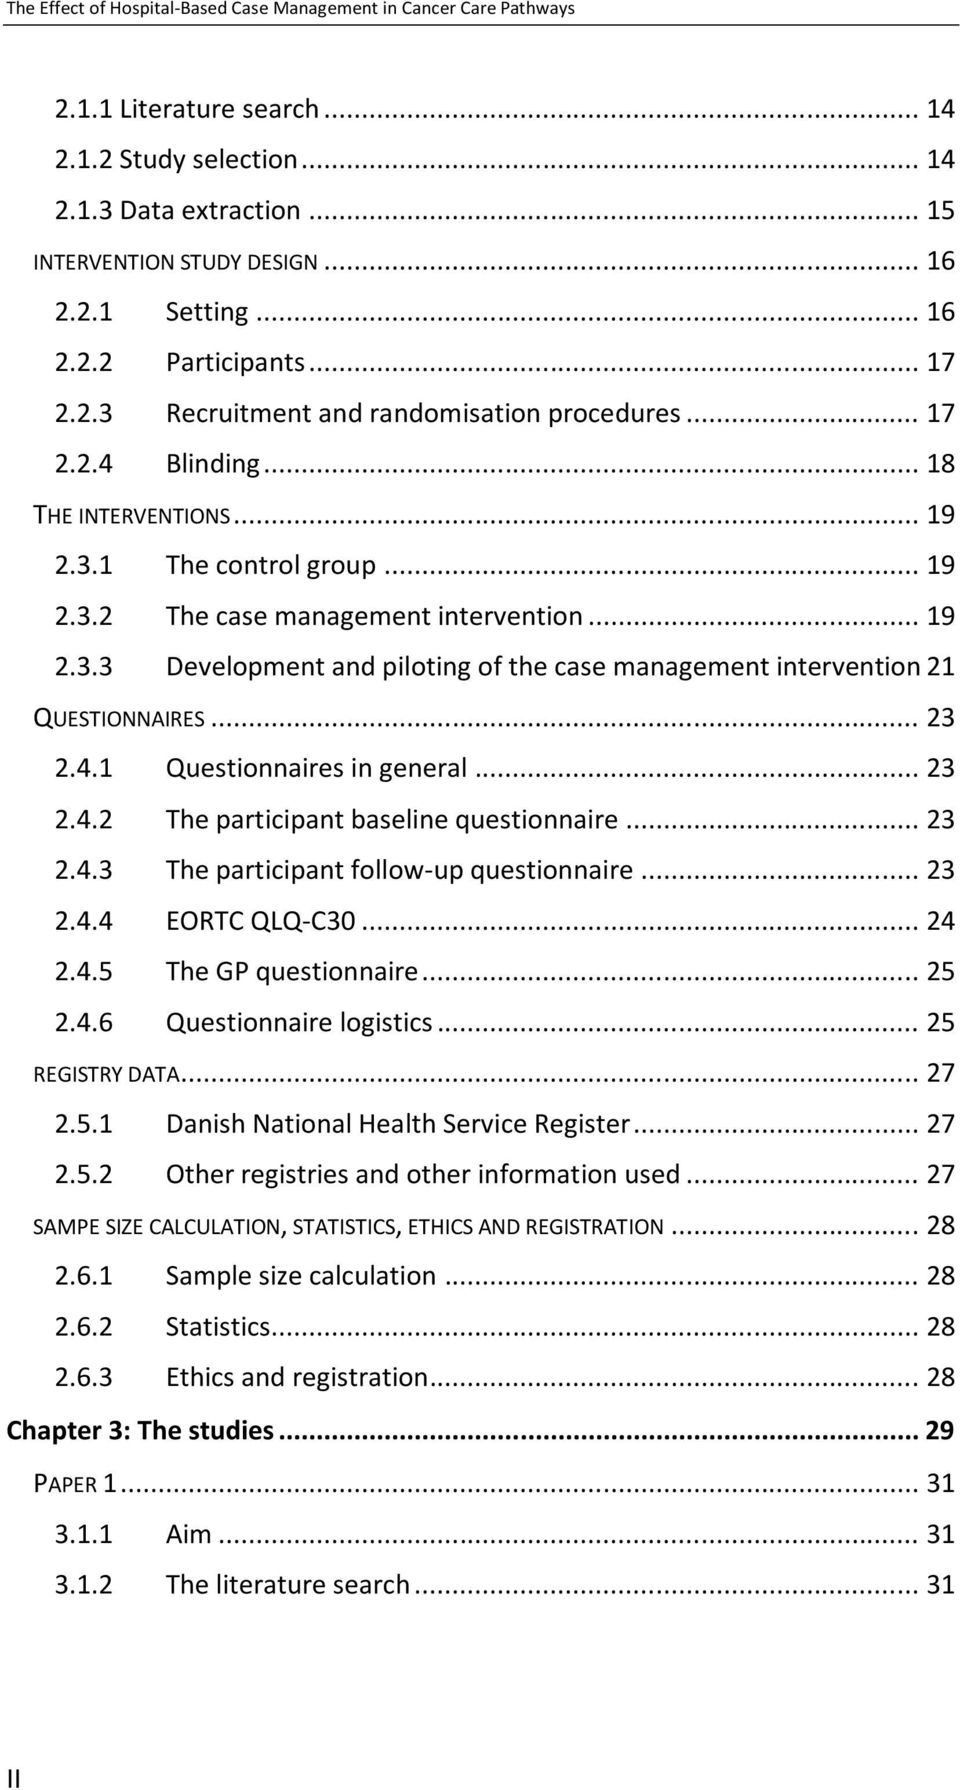 .. 19 2.3.3 Development and piloting of the case management intervention 21 QUESTIONNAIRES... 23 2.4.1 Questionnaires in general... 23 2.4.2 The participant baseline questionnaire... 23 2.4.3 The participant follow-up questionnaire.